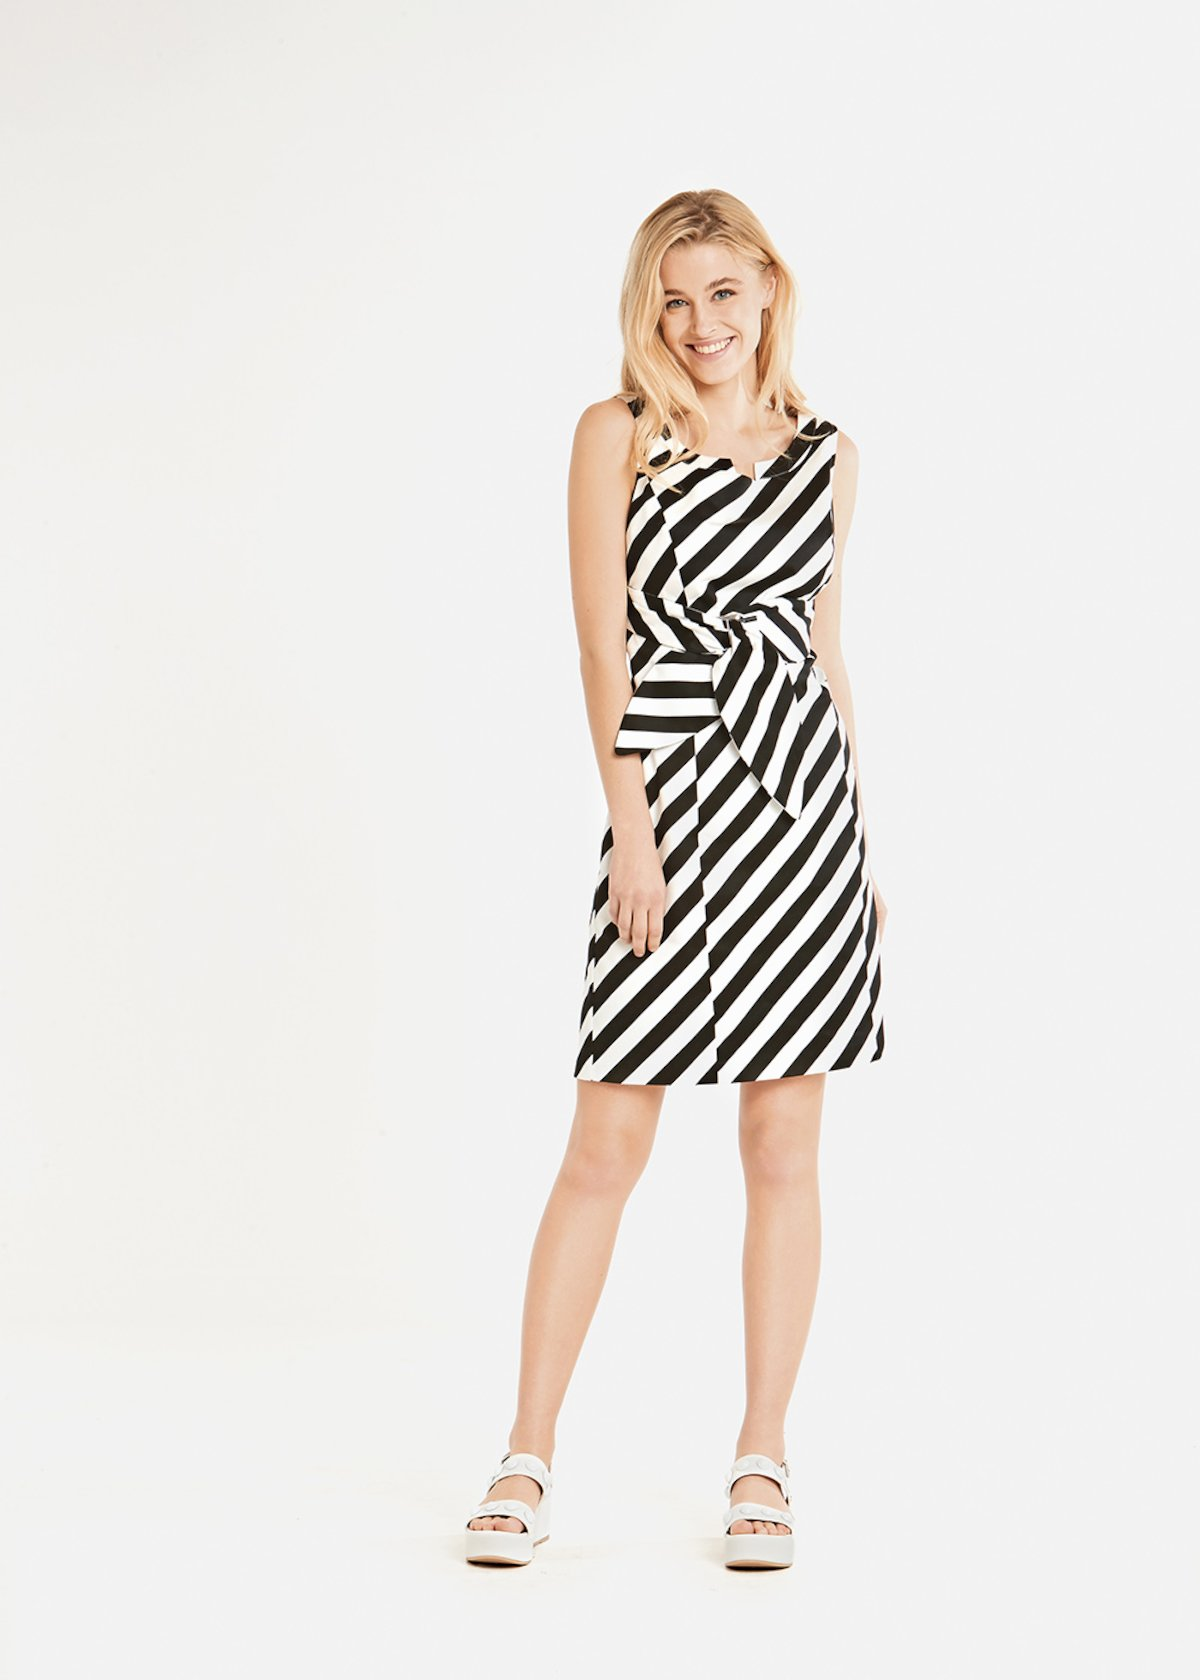 Audrey stripes fantacy dress with belt effect - Black / White Stripes